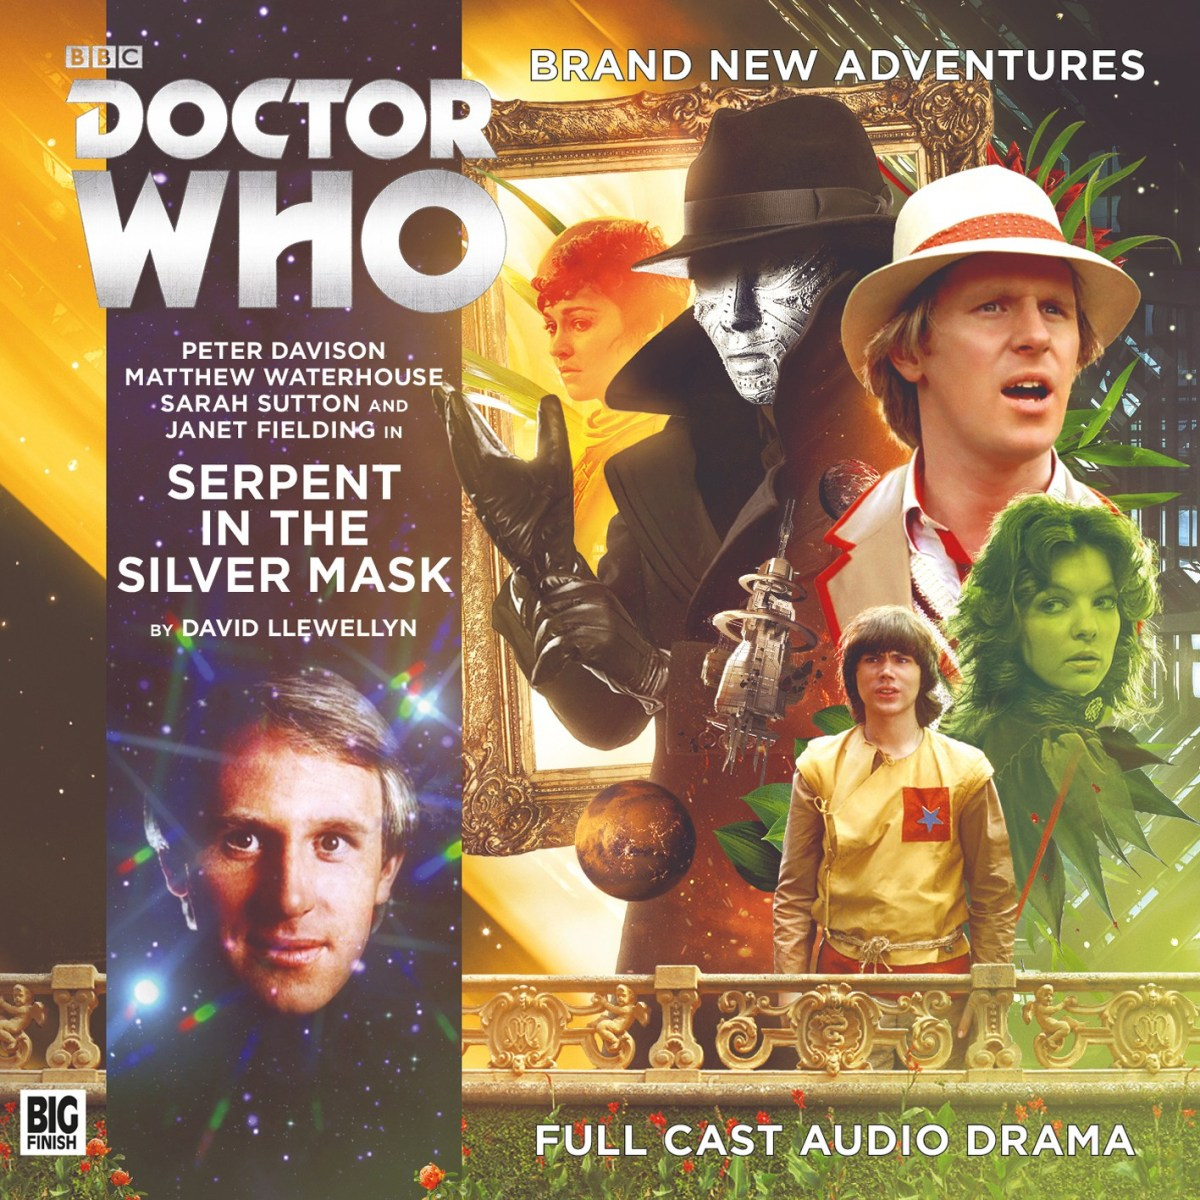 Serpent in the Silver Mask review